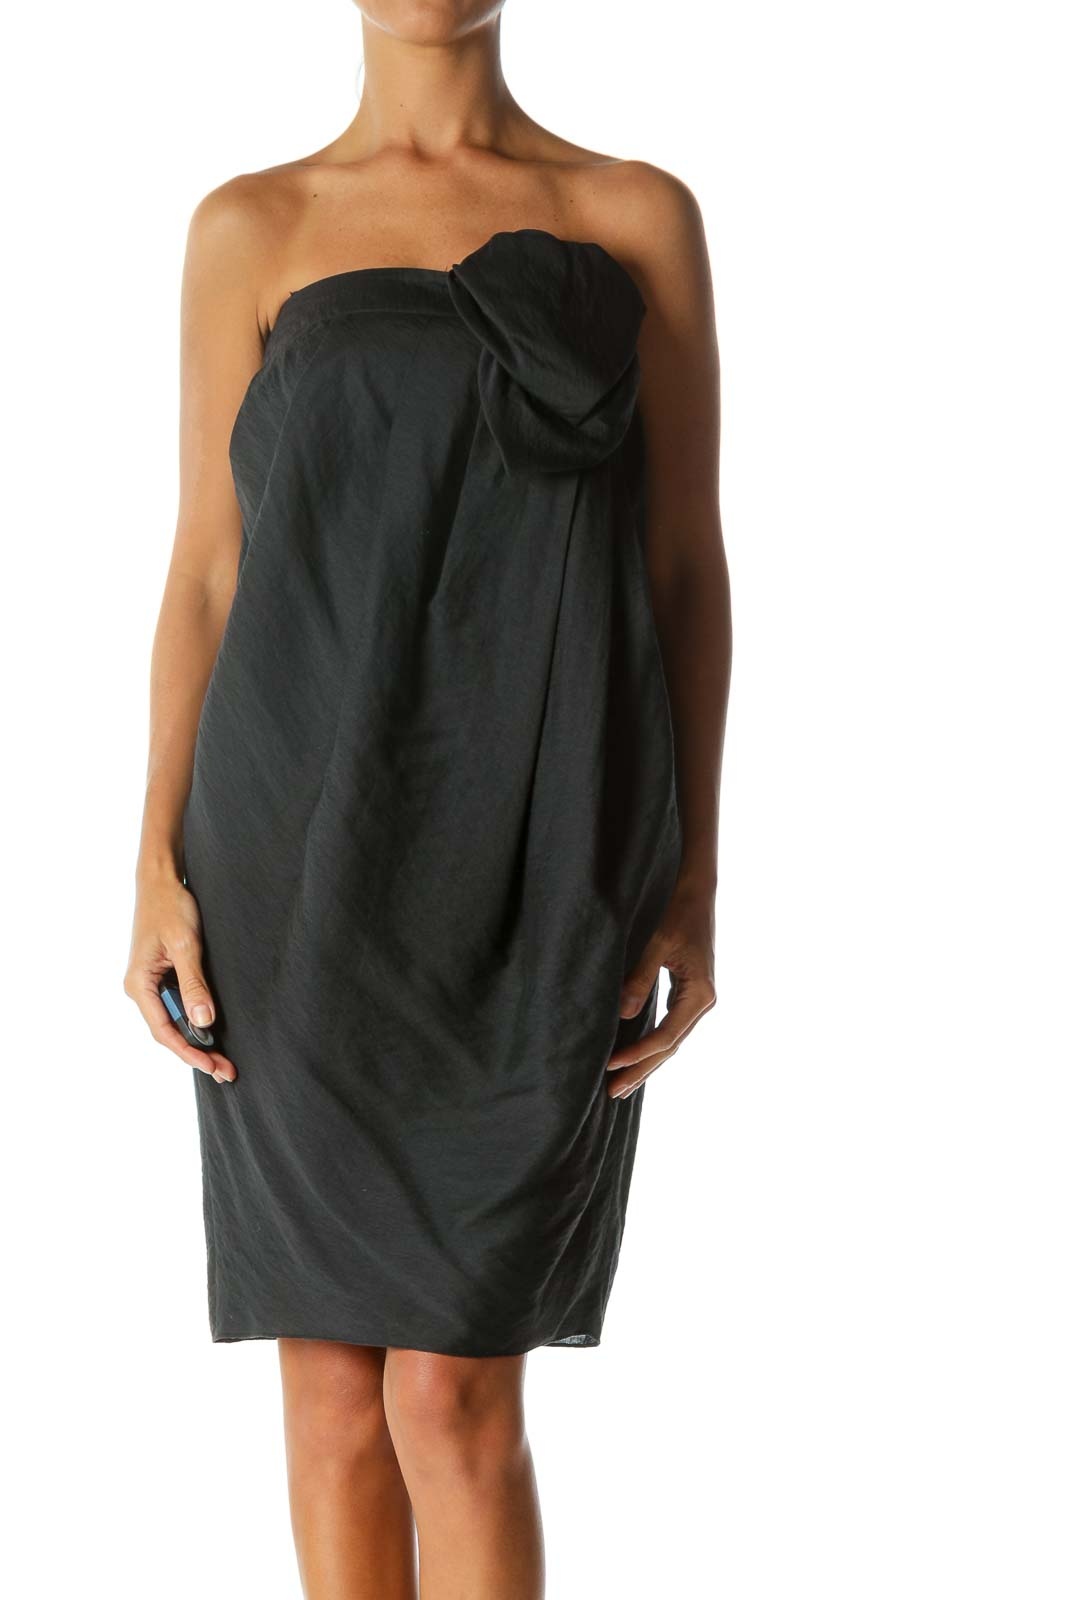 Black Strapless Designer Pleated Cocktail Dress with Chest Applique  Front